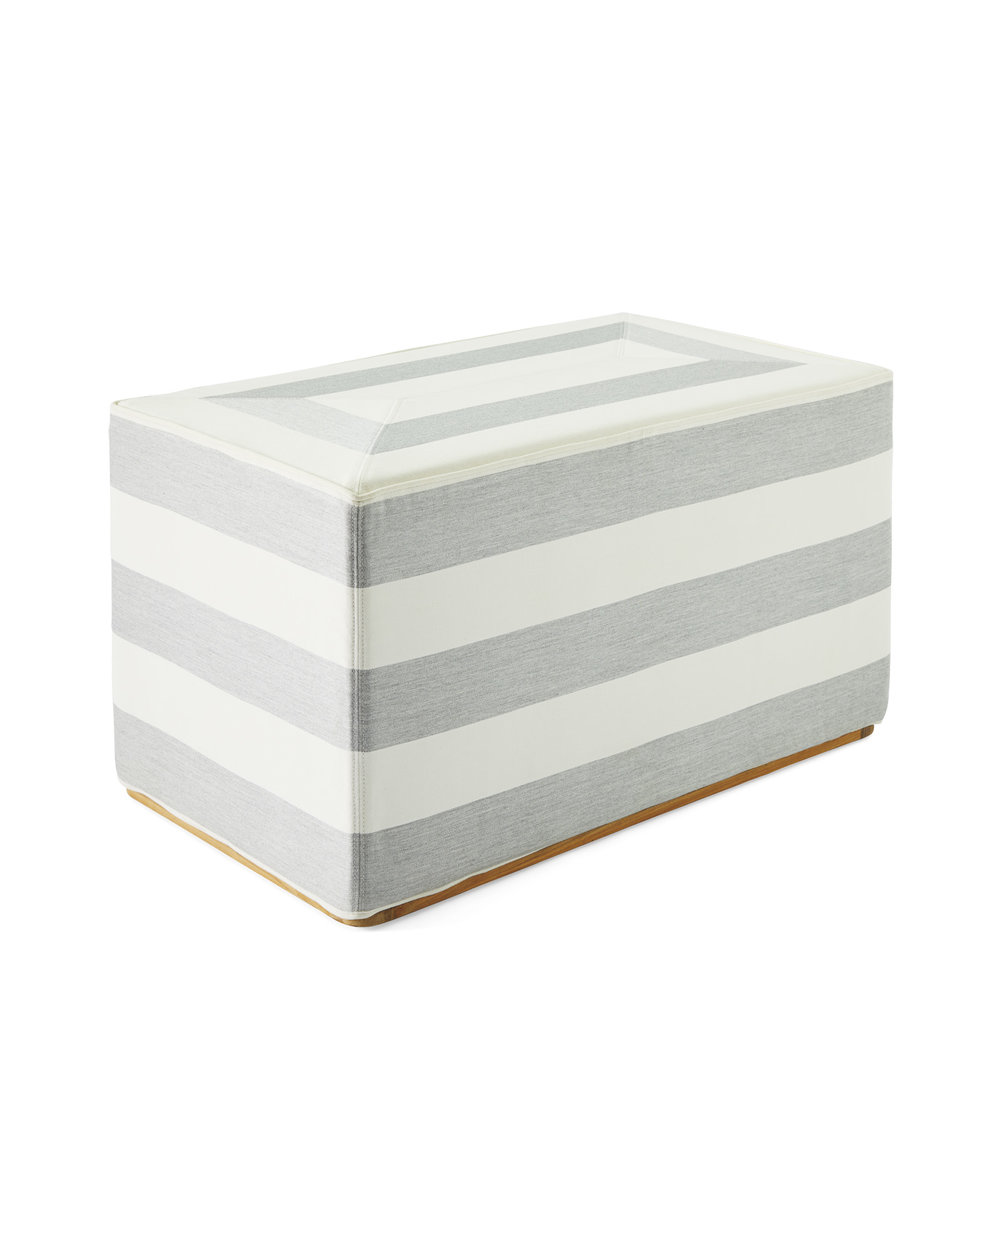 Rockport Ottoman from Serena & Lily